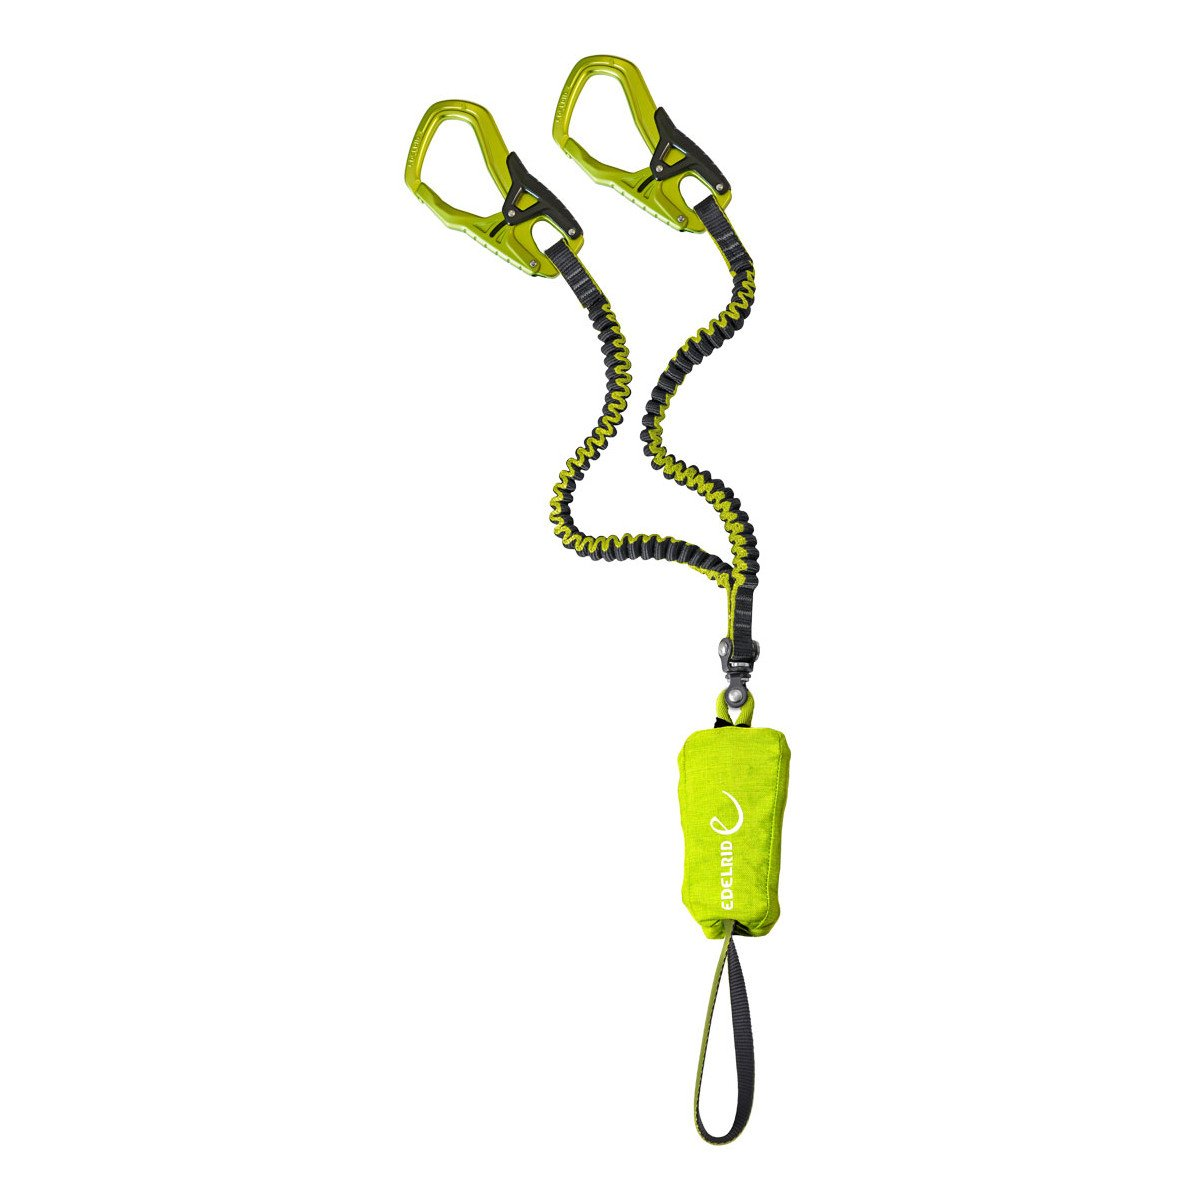 Edelrid Cable Comfort 5.0 via ferrata set, in green with green carabiners